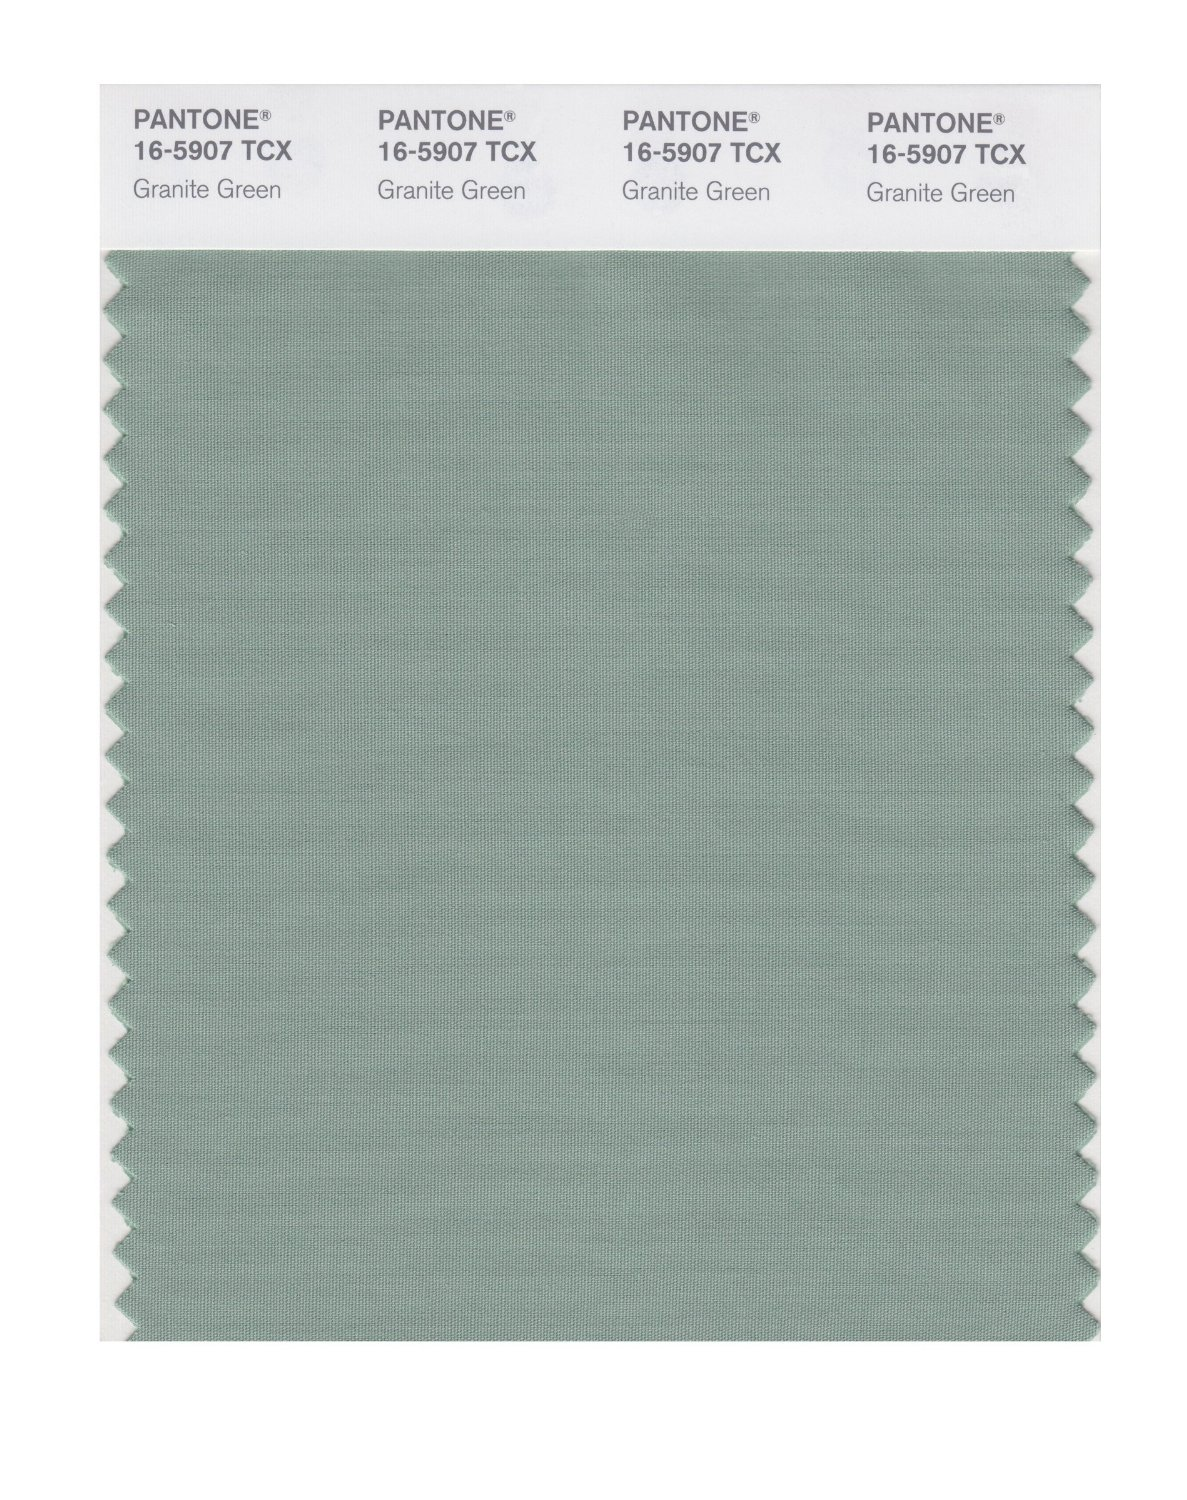 Pantone Smart Swatch 16-5907 Granite Green